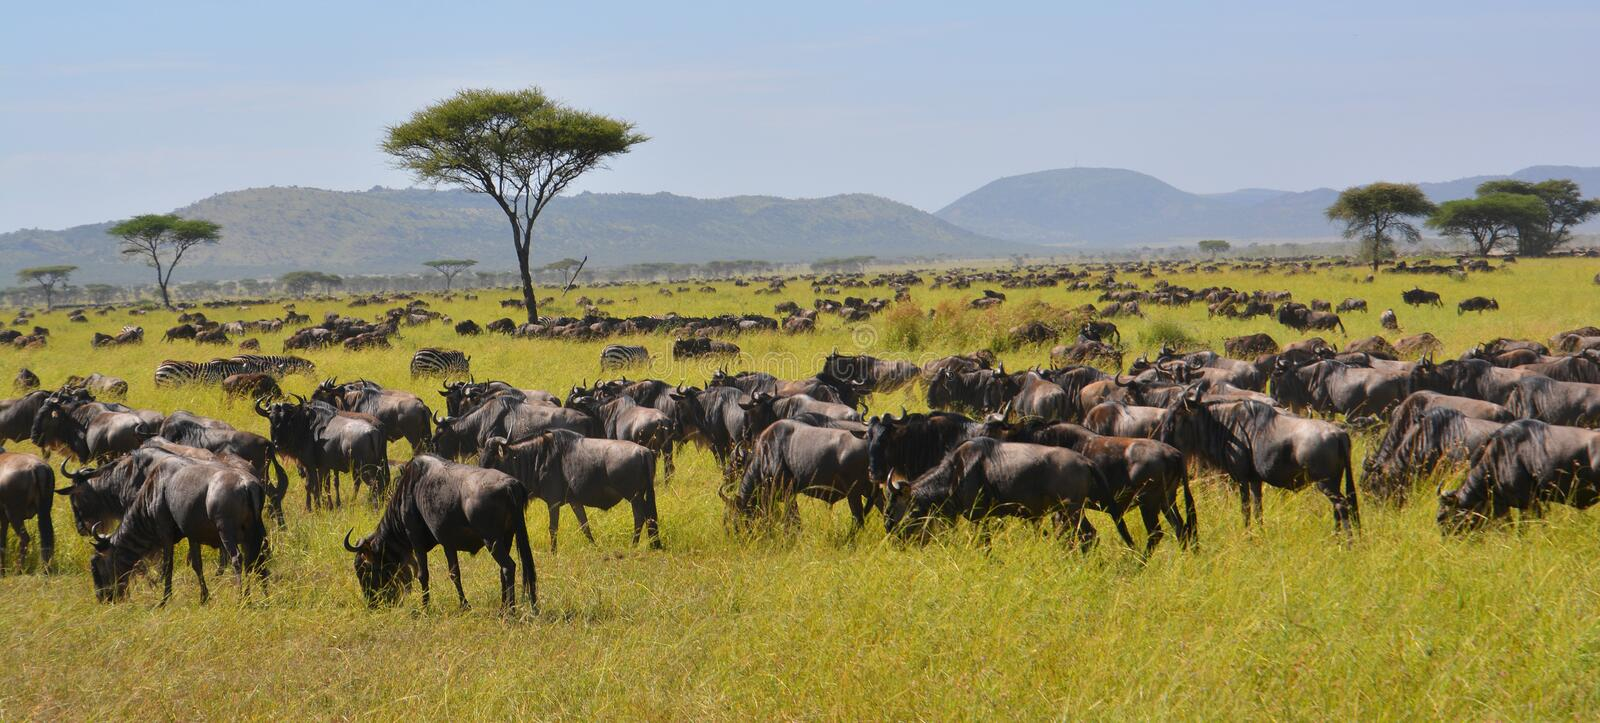 Migration of the buffalo Wildebeest on the plains of Africa. royalty free stock photography